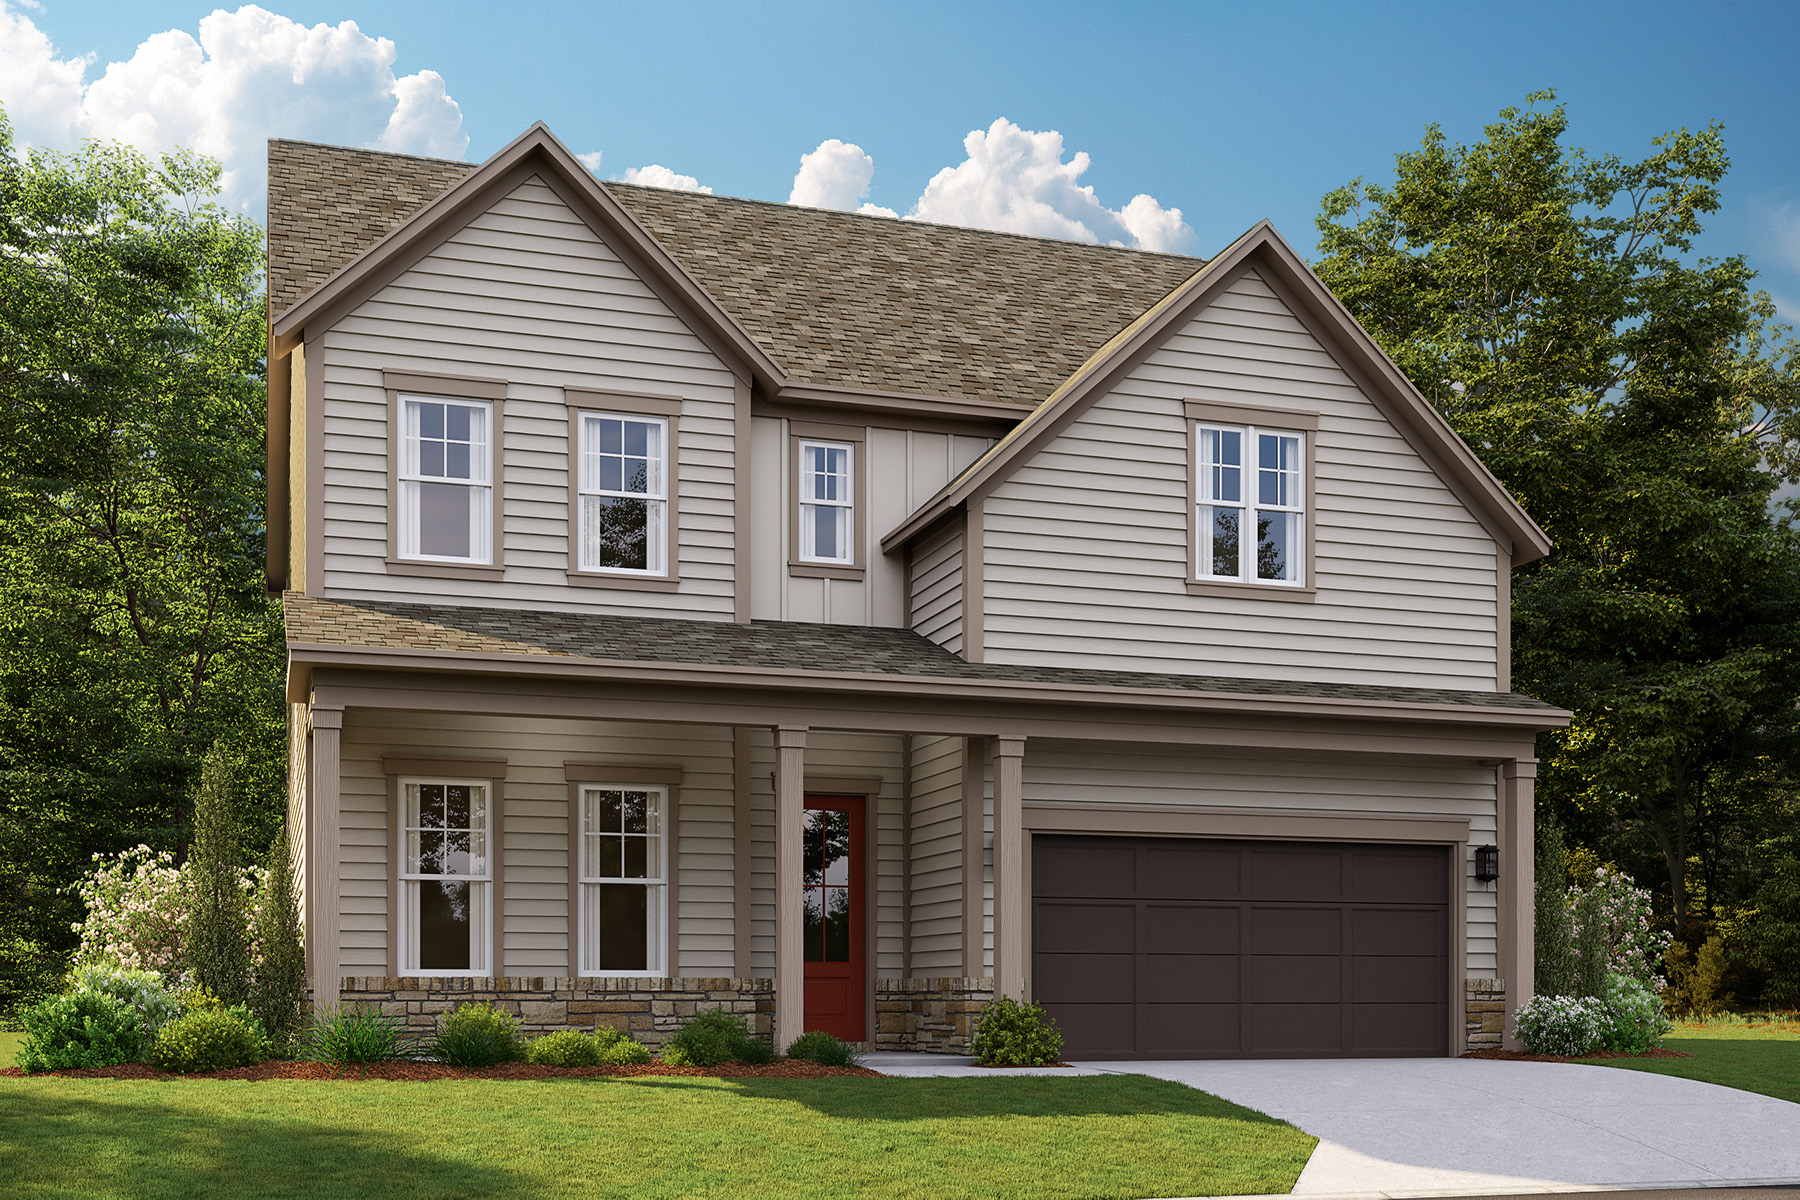 Single Family Homes for Sale at Discover The Enclave at Belvedere 3400 Alcan Way Tucker, Georgia 30084 United States